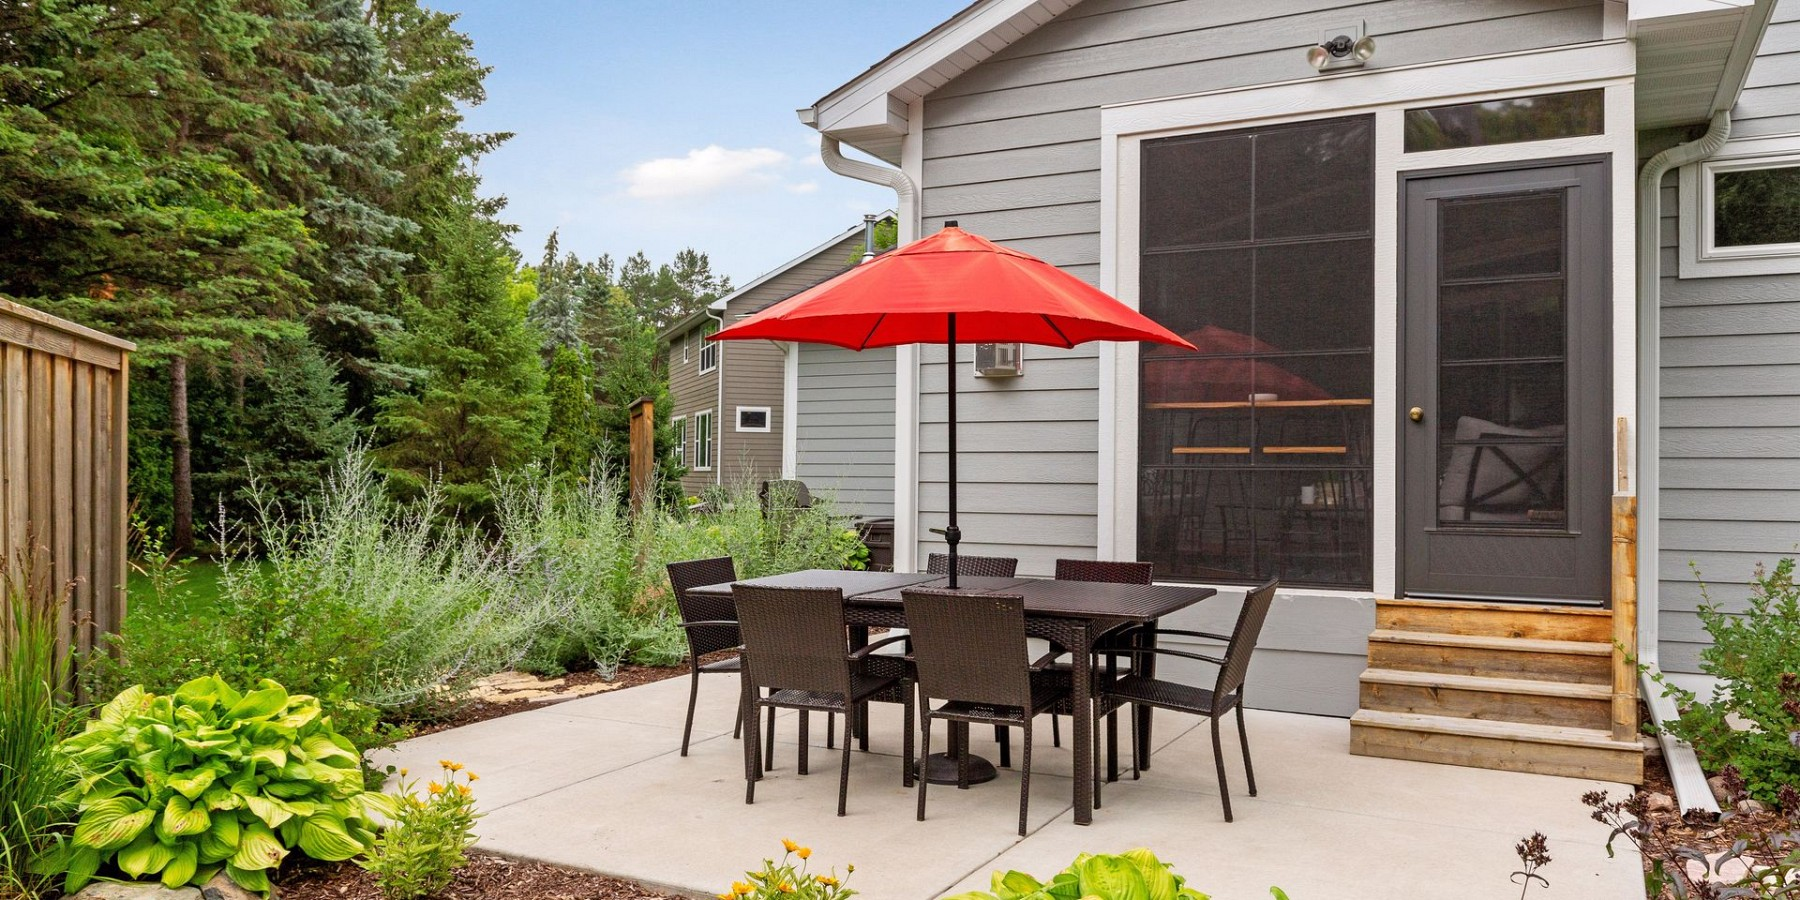 1445 QUEENSLAND LANE N, PLYMOUTH, MN 55447